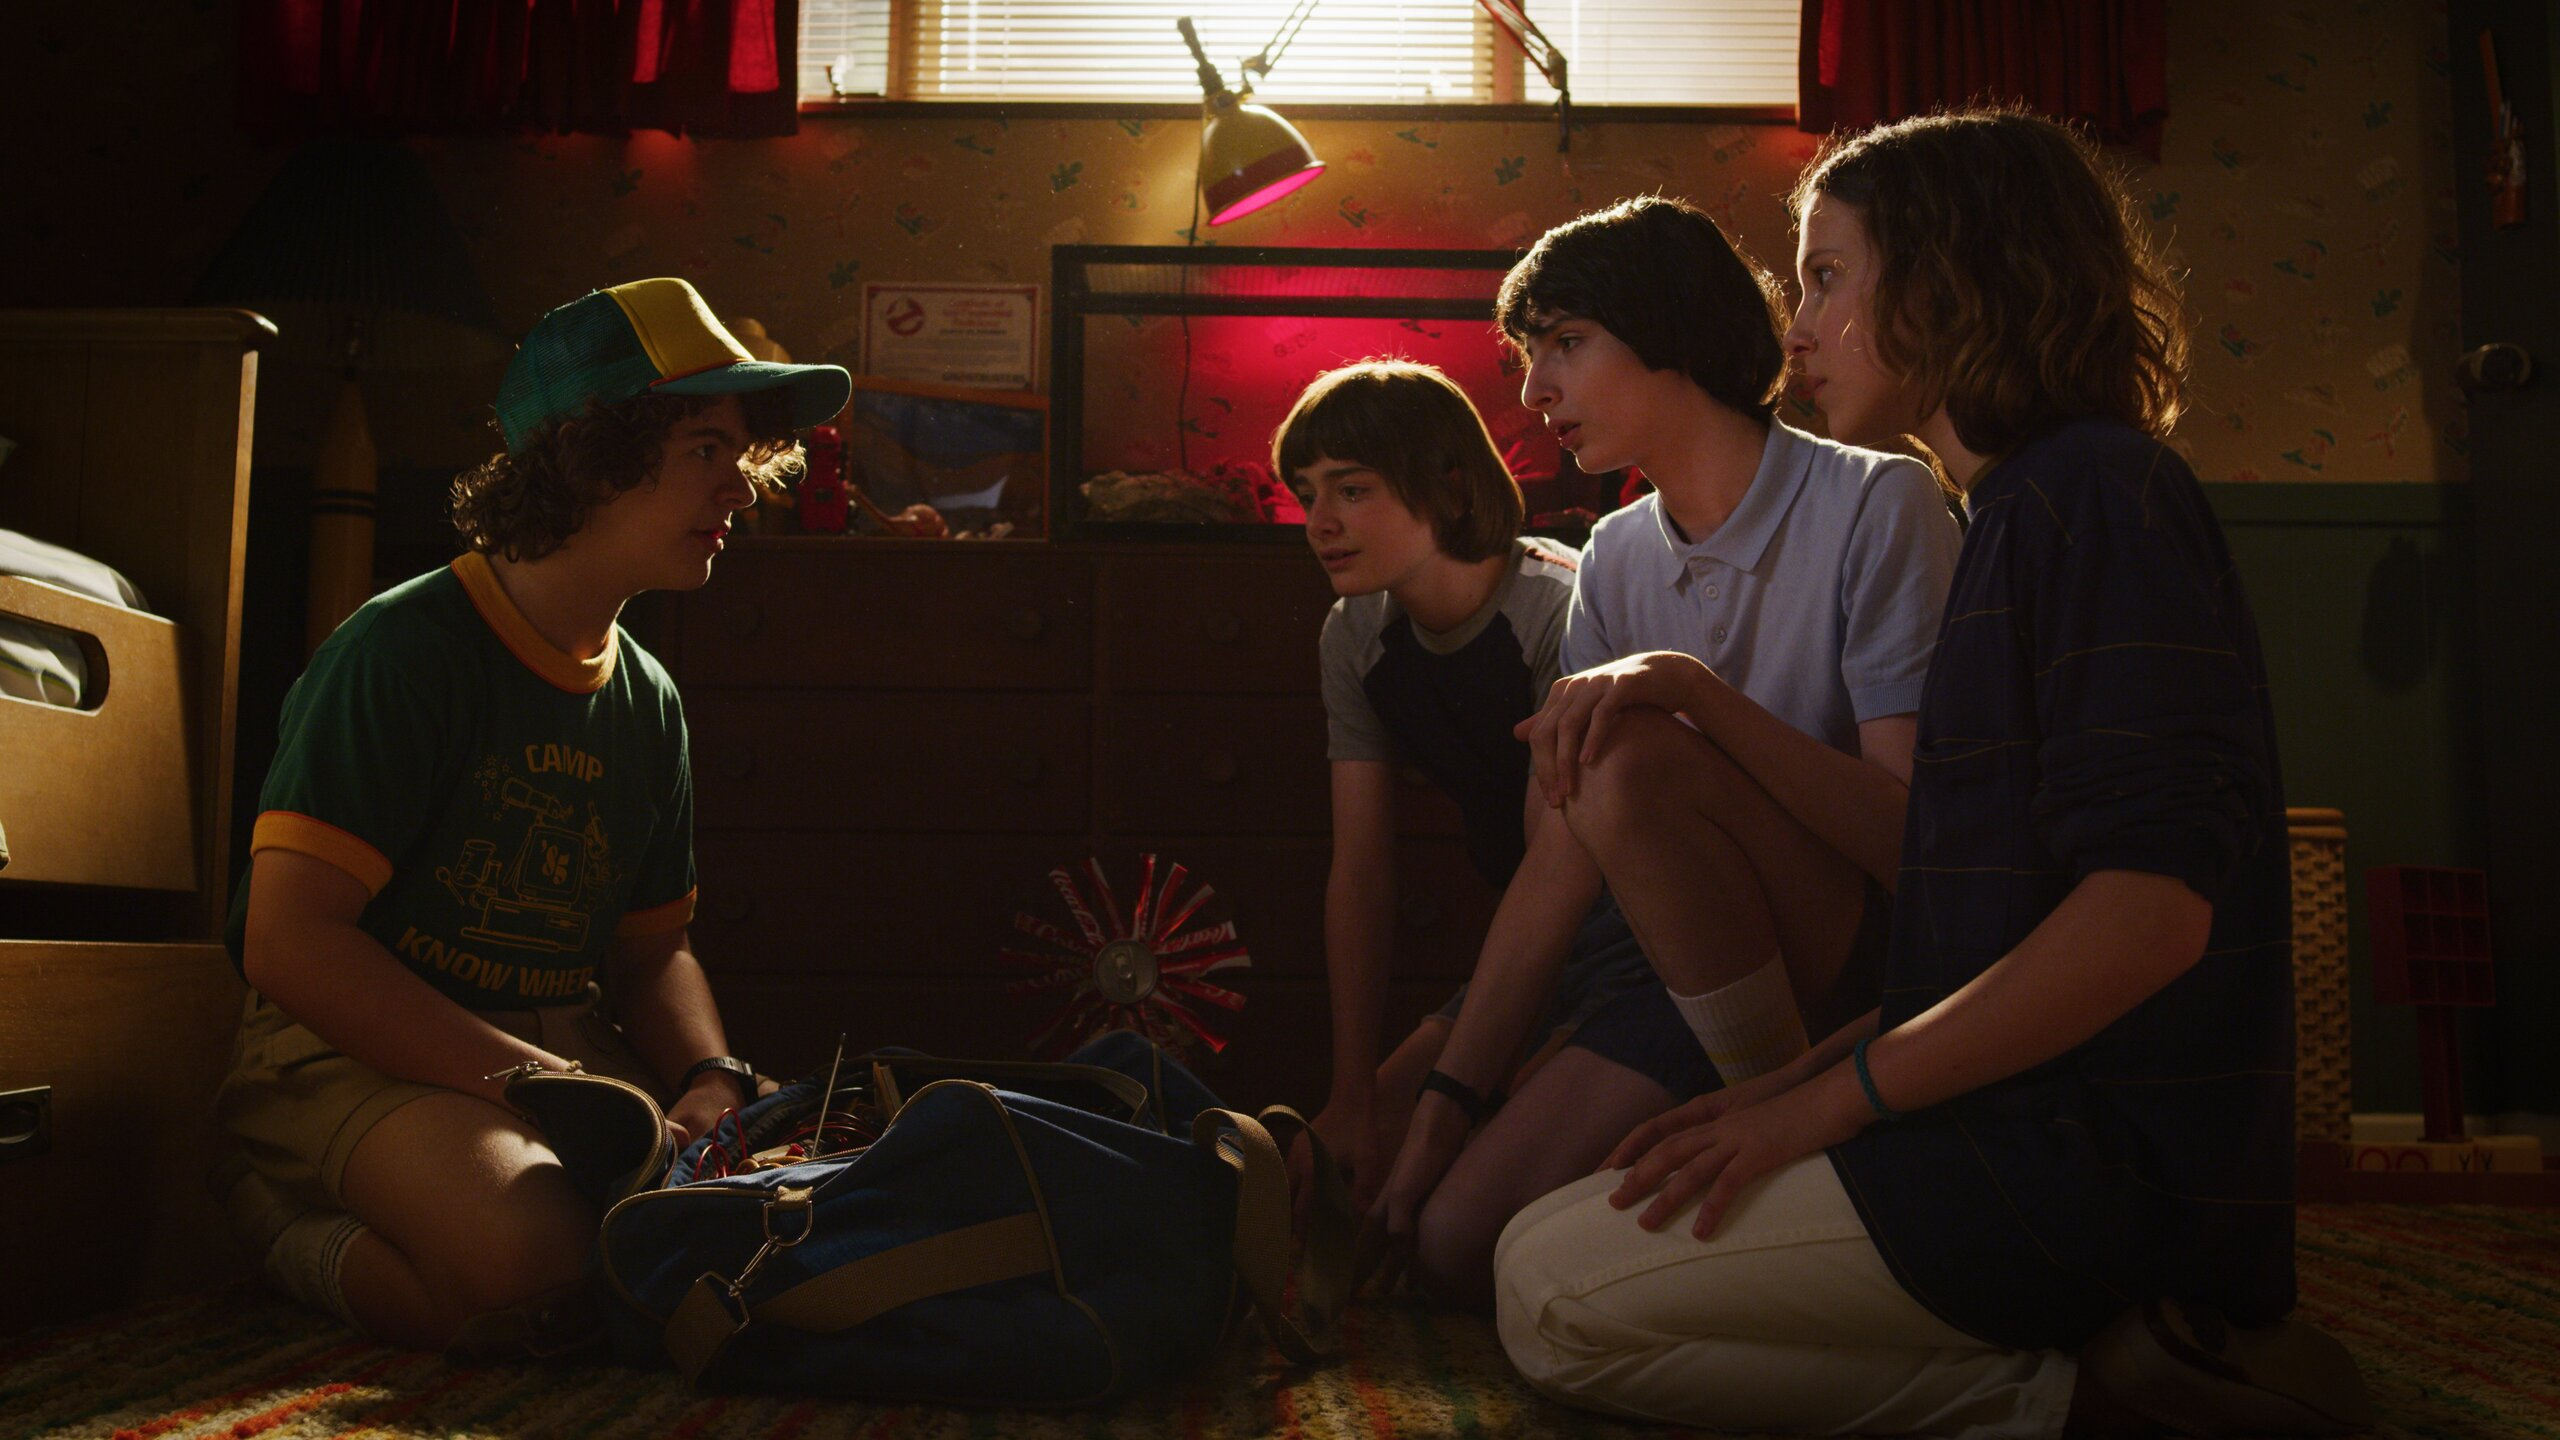 stranger-things-season-3-the-mall-rats-h9.jpg